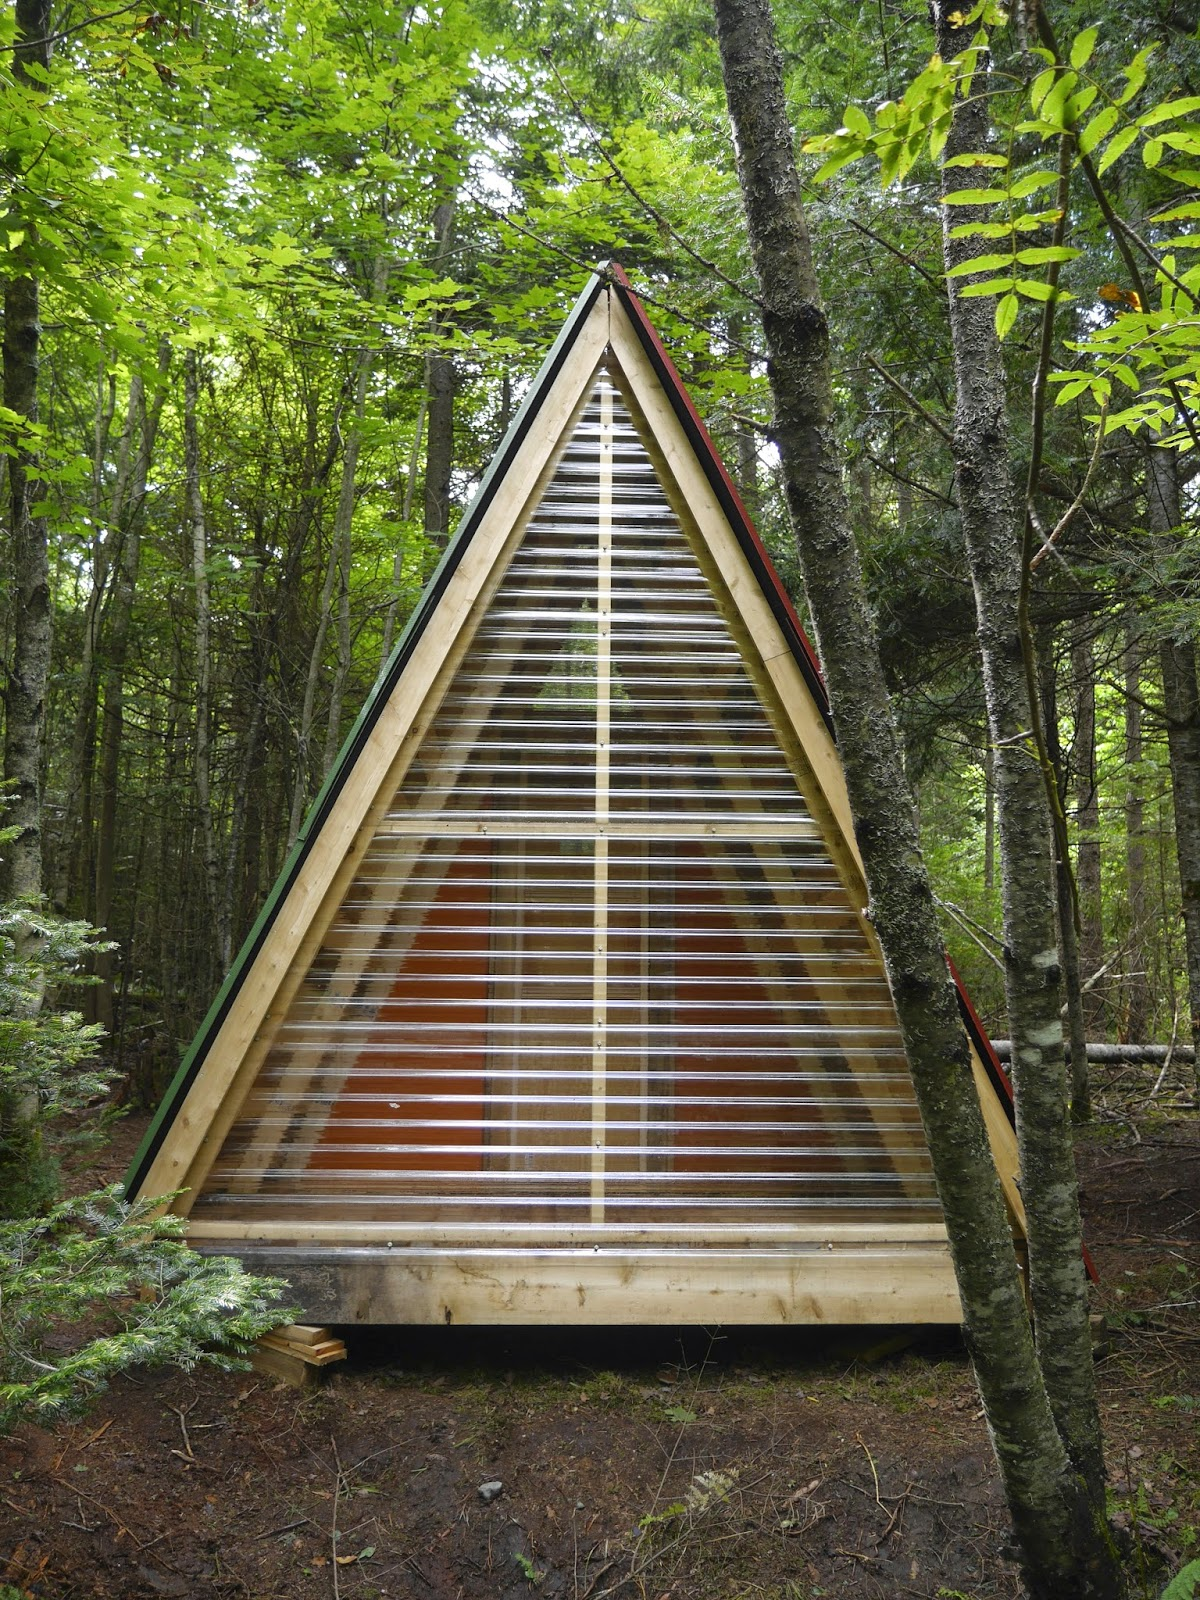 Relaxshacks A Tiny Bunk House Made From Scrap And